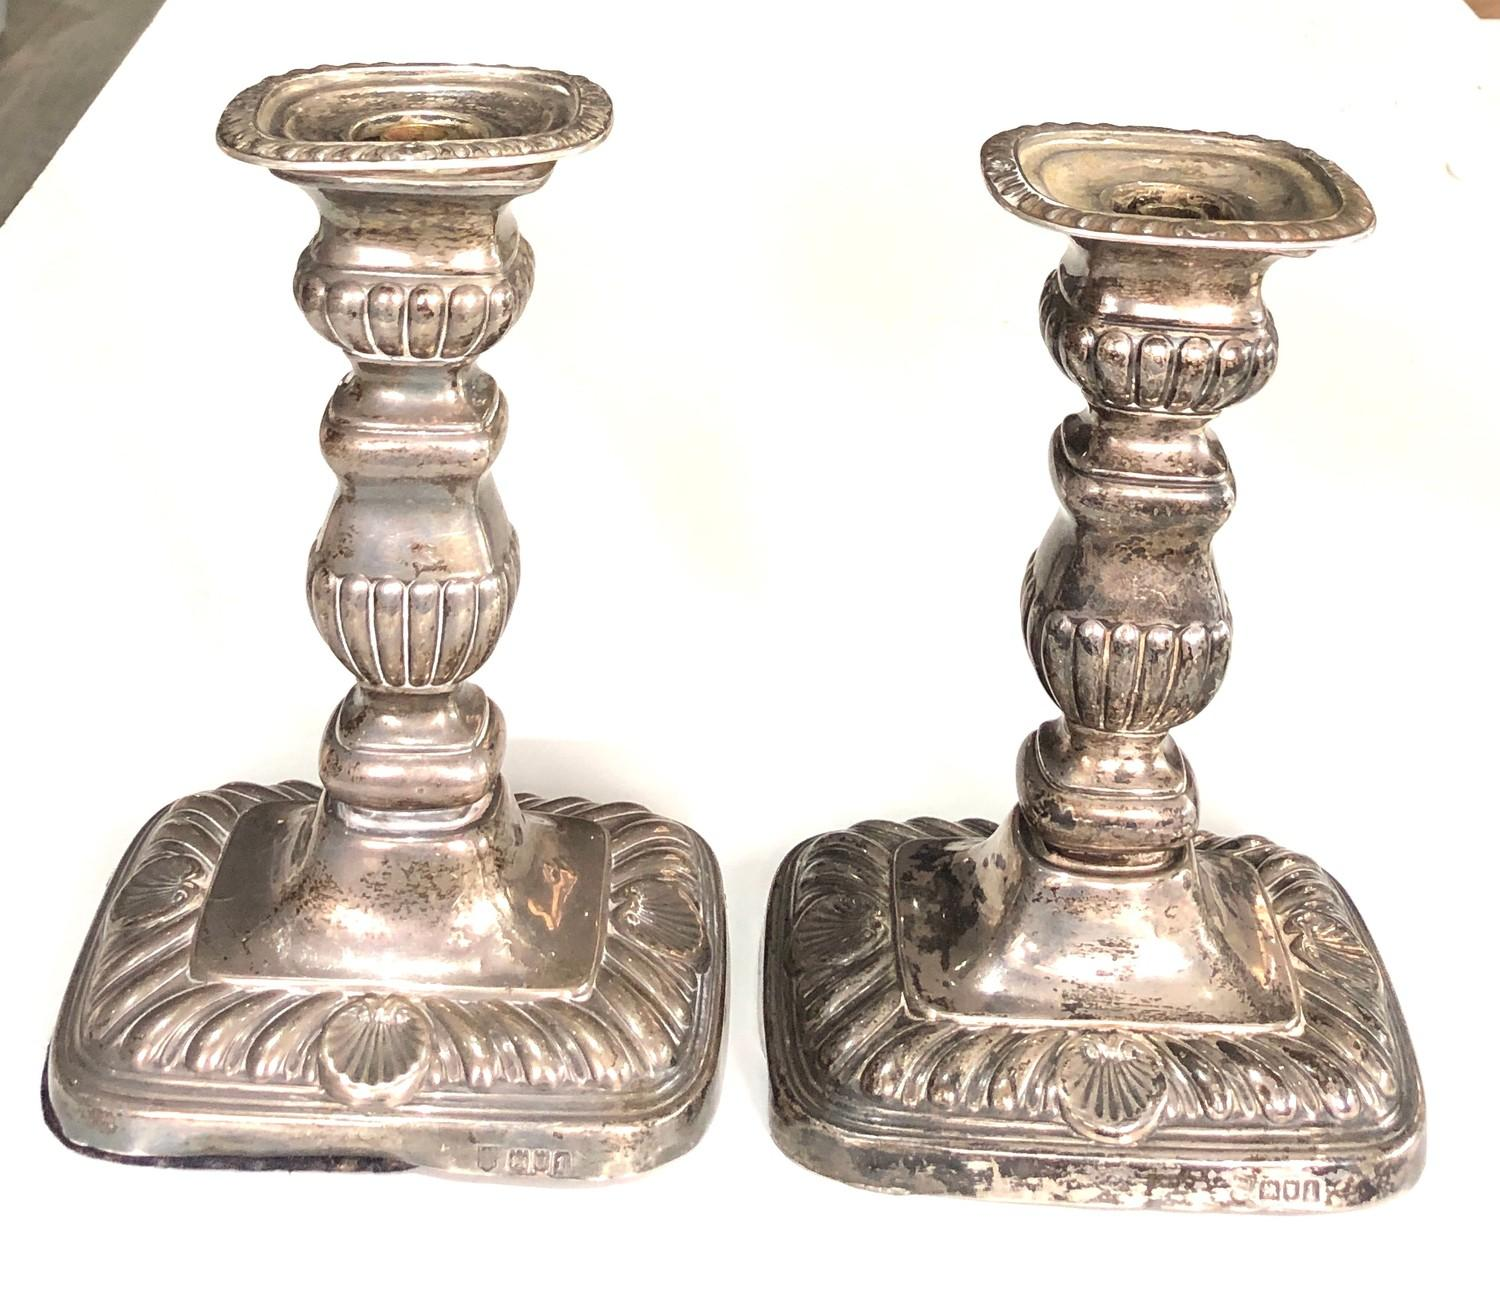 A pair of Edwardian silver rounded rectangular candlesticks, 18cm high London 1906, fitted as - Image 2 of 7